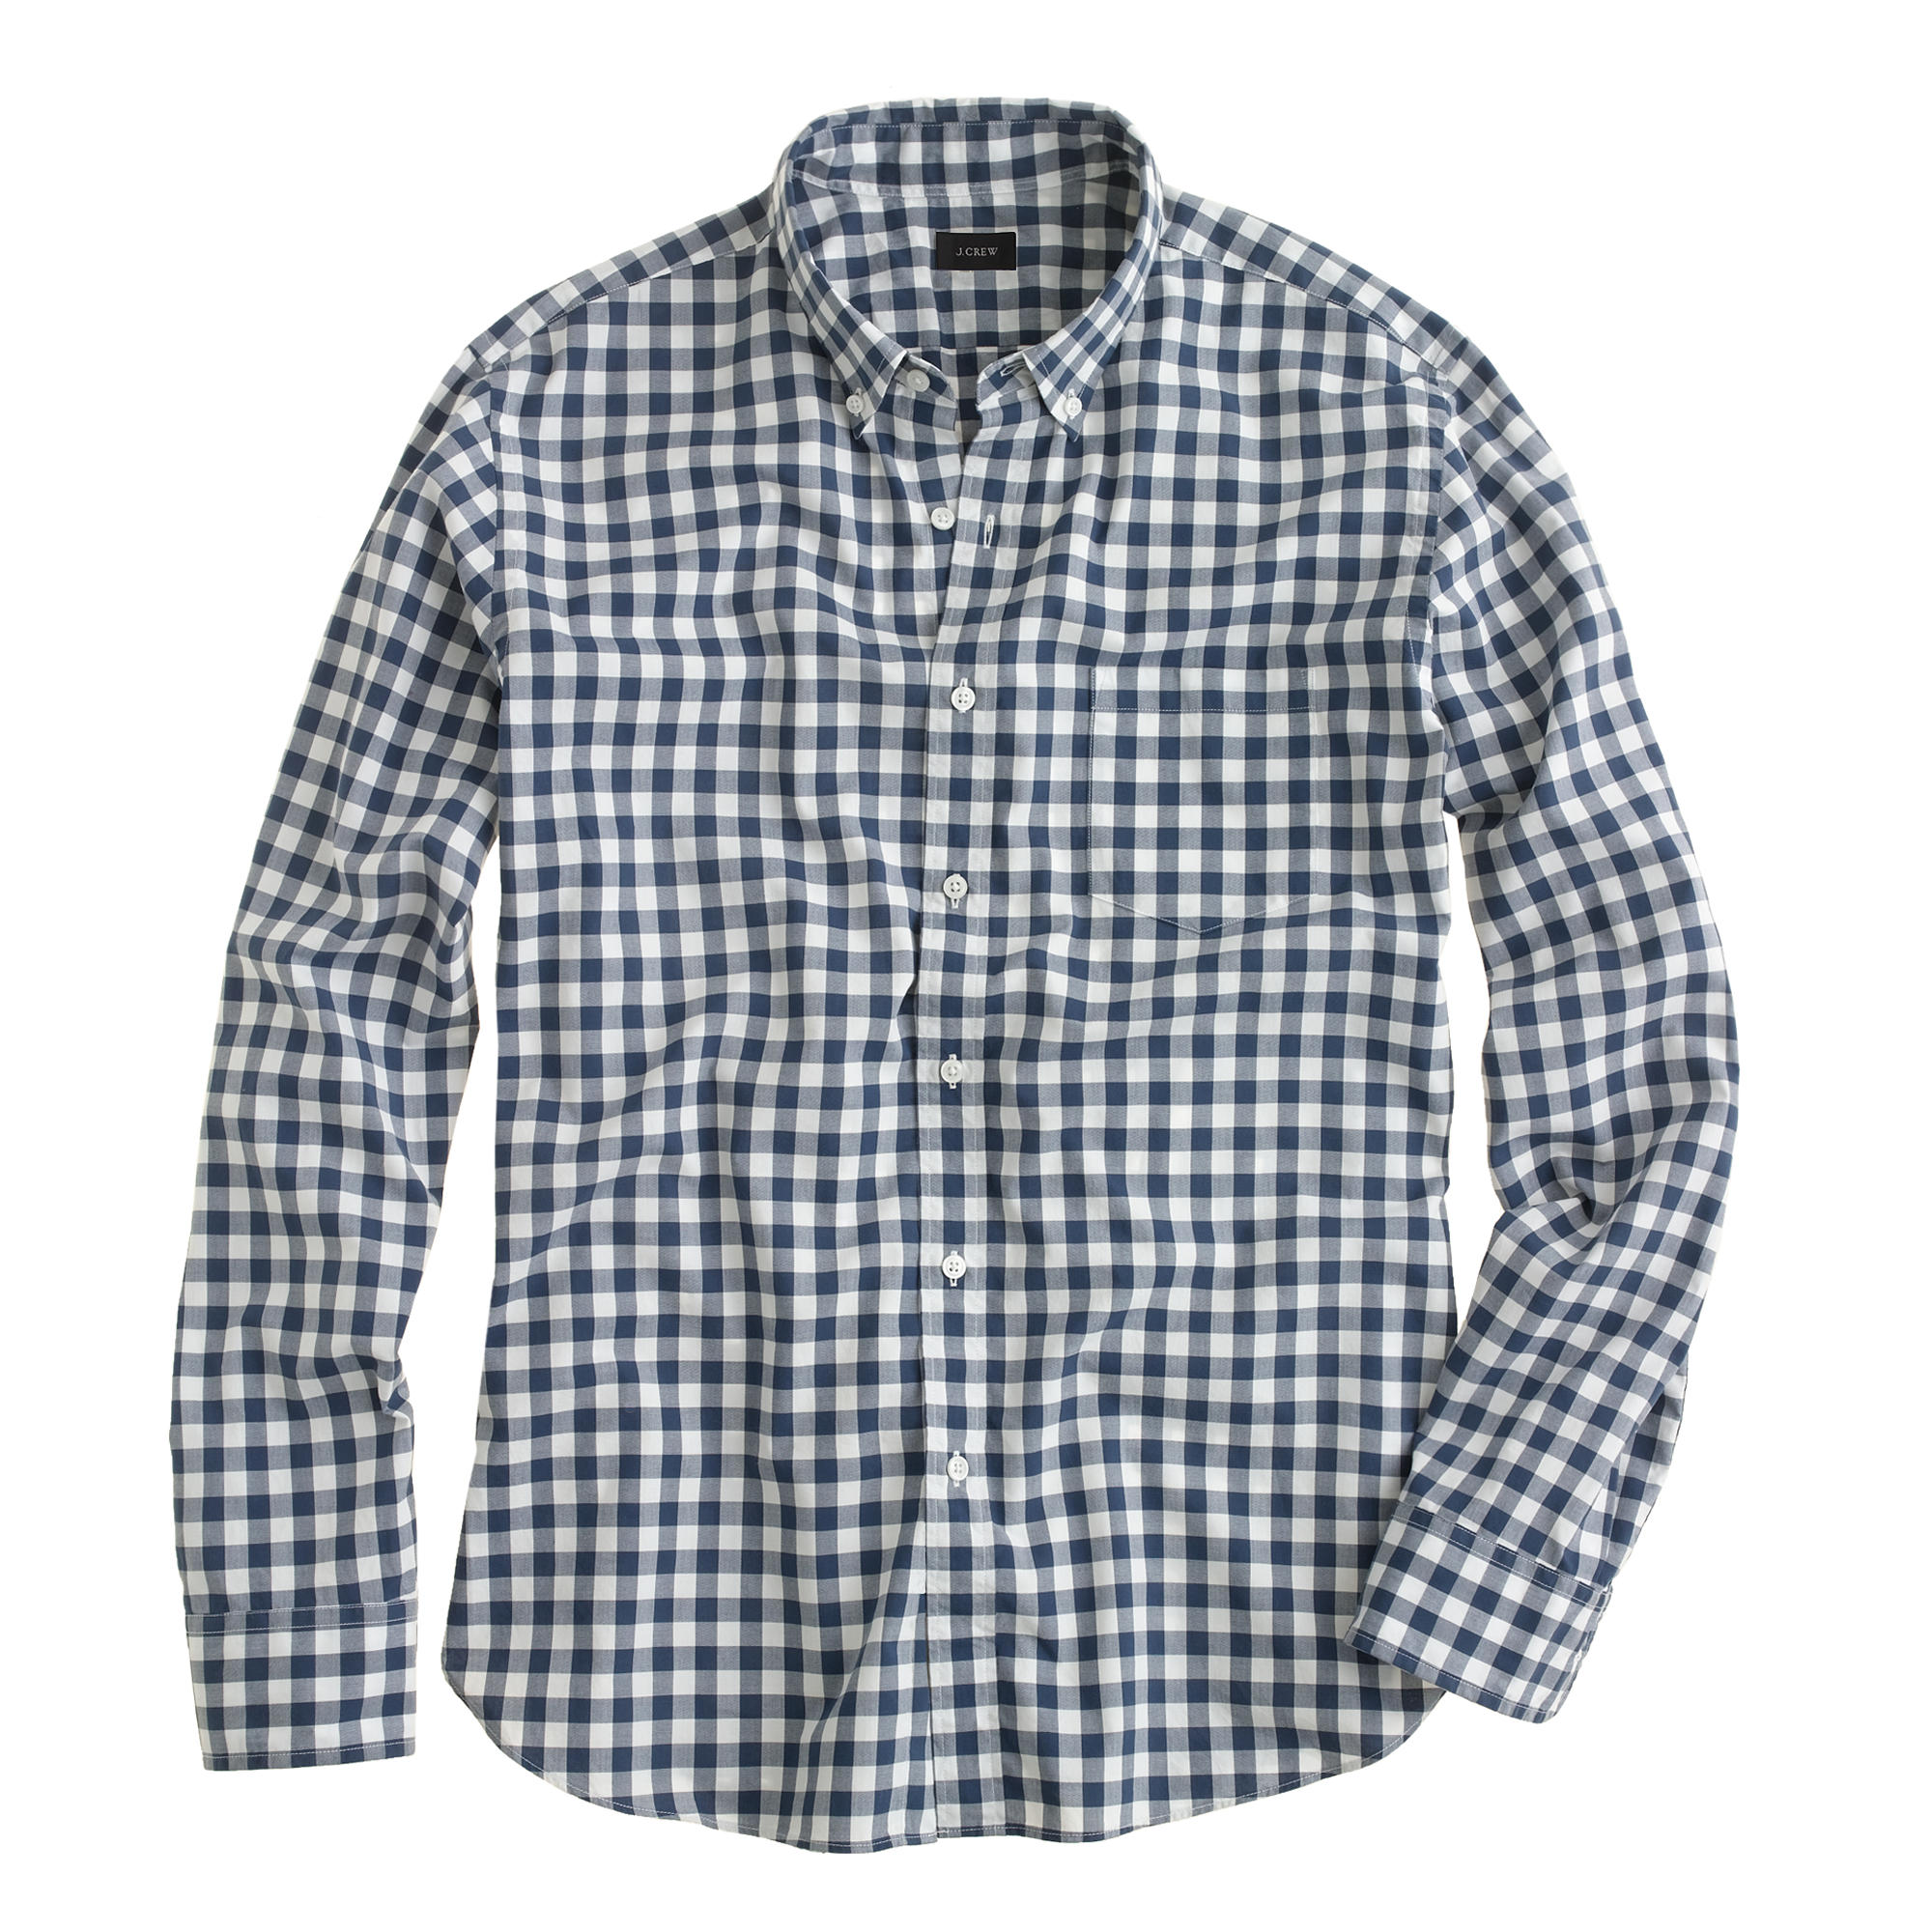 Secret Wash Shirt In Faded Gingham : Men's Shirts | J.Crew